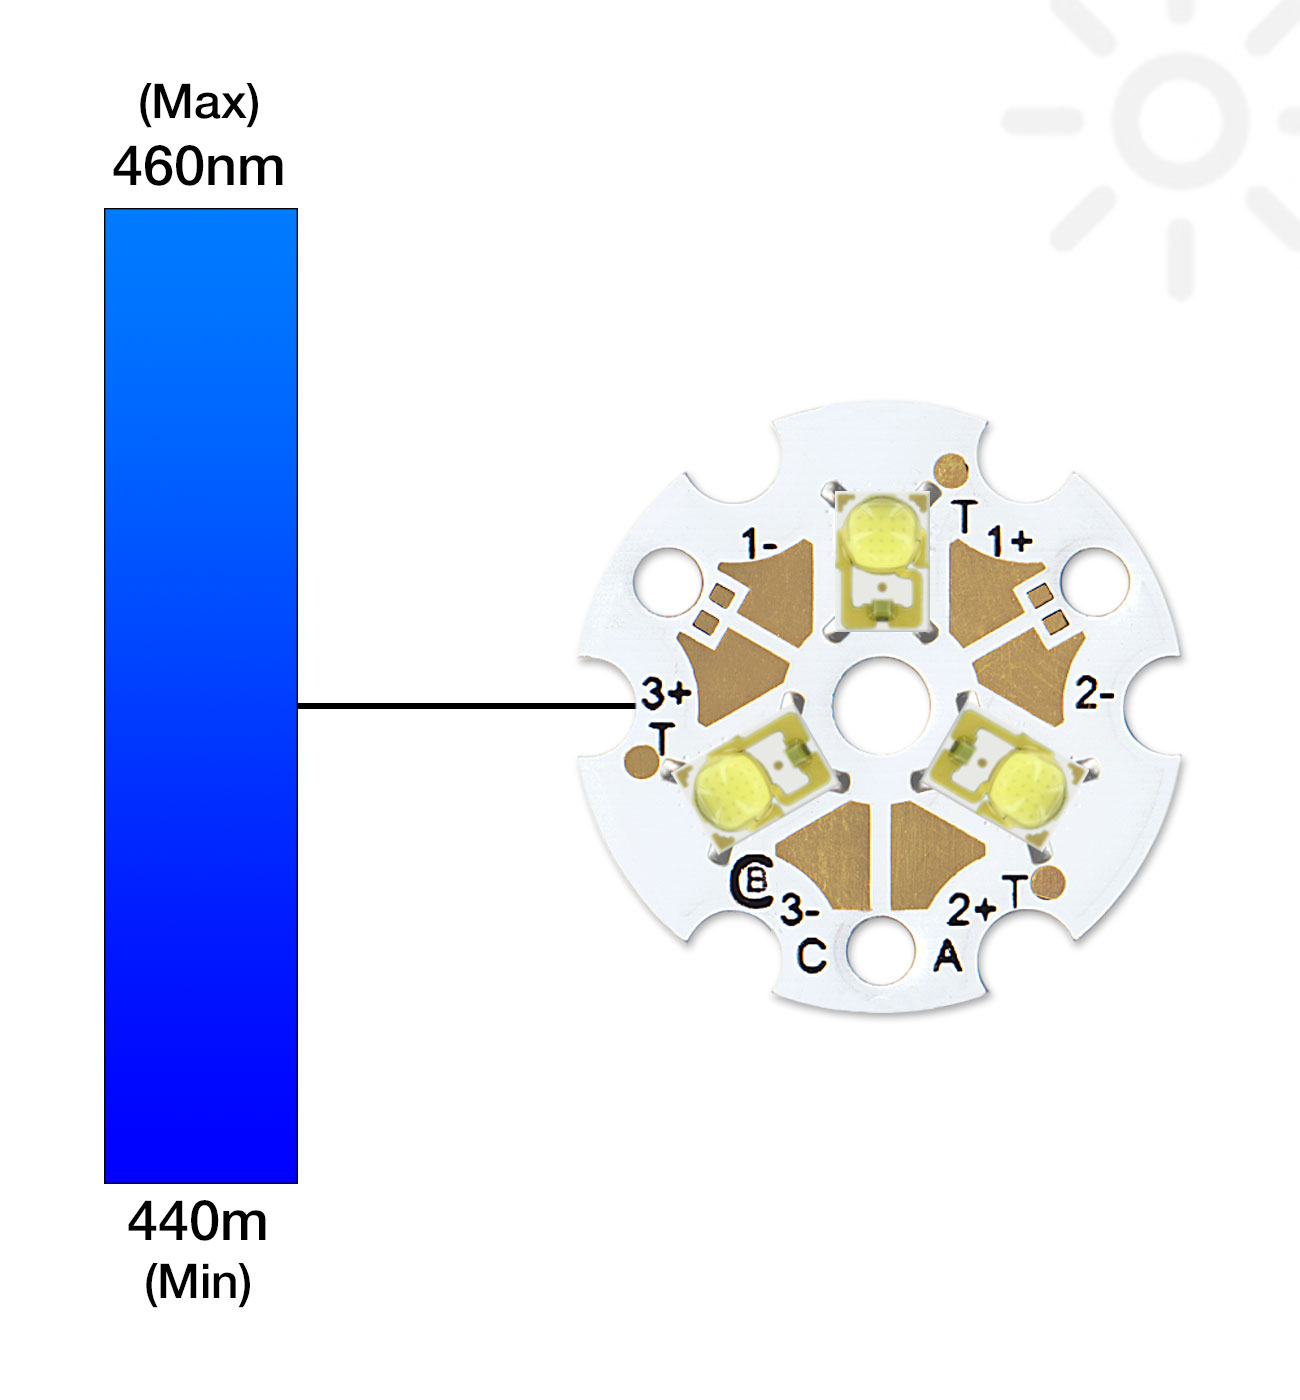 Royal Blue 4475nm Coolbase Tri Star Led 2730mw